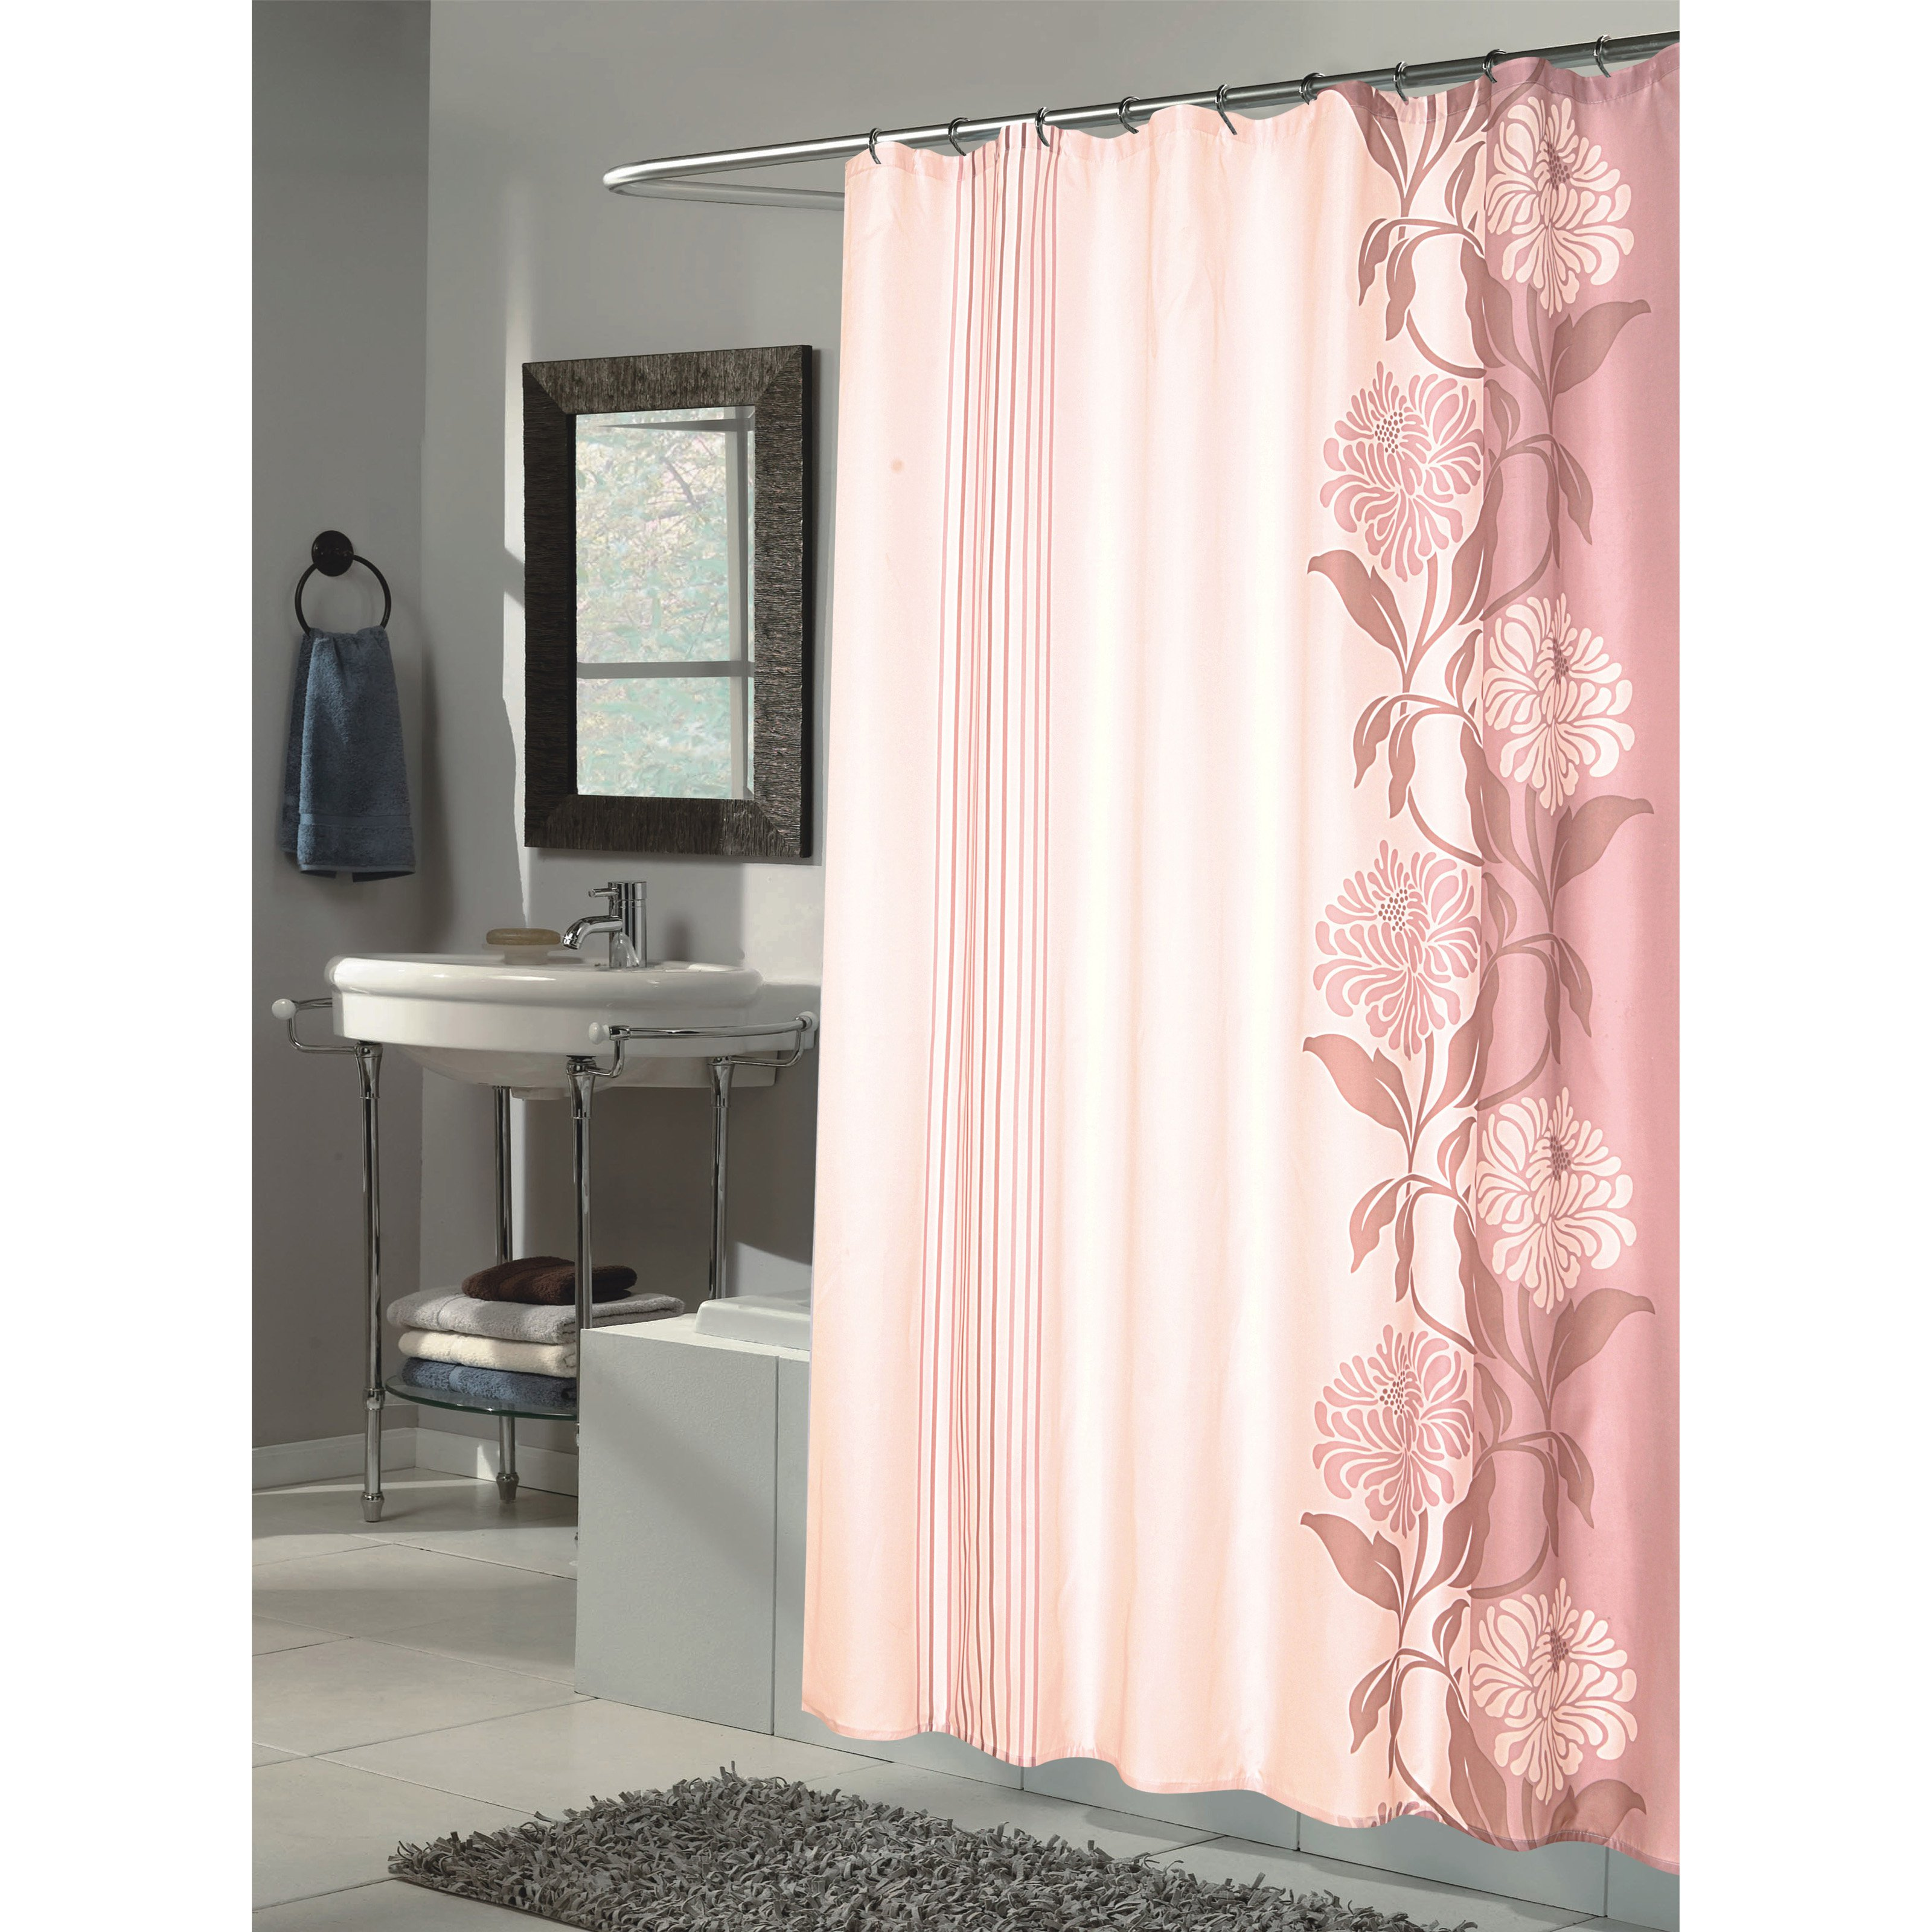 Tree shower curtain bed bath and beyond - Tree Shower Curtain Bed Bath And Beyond 20